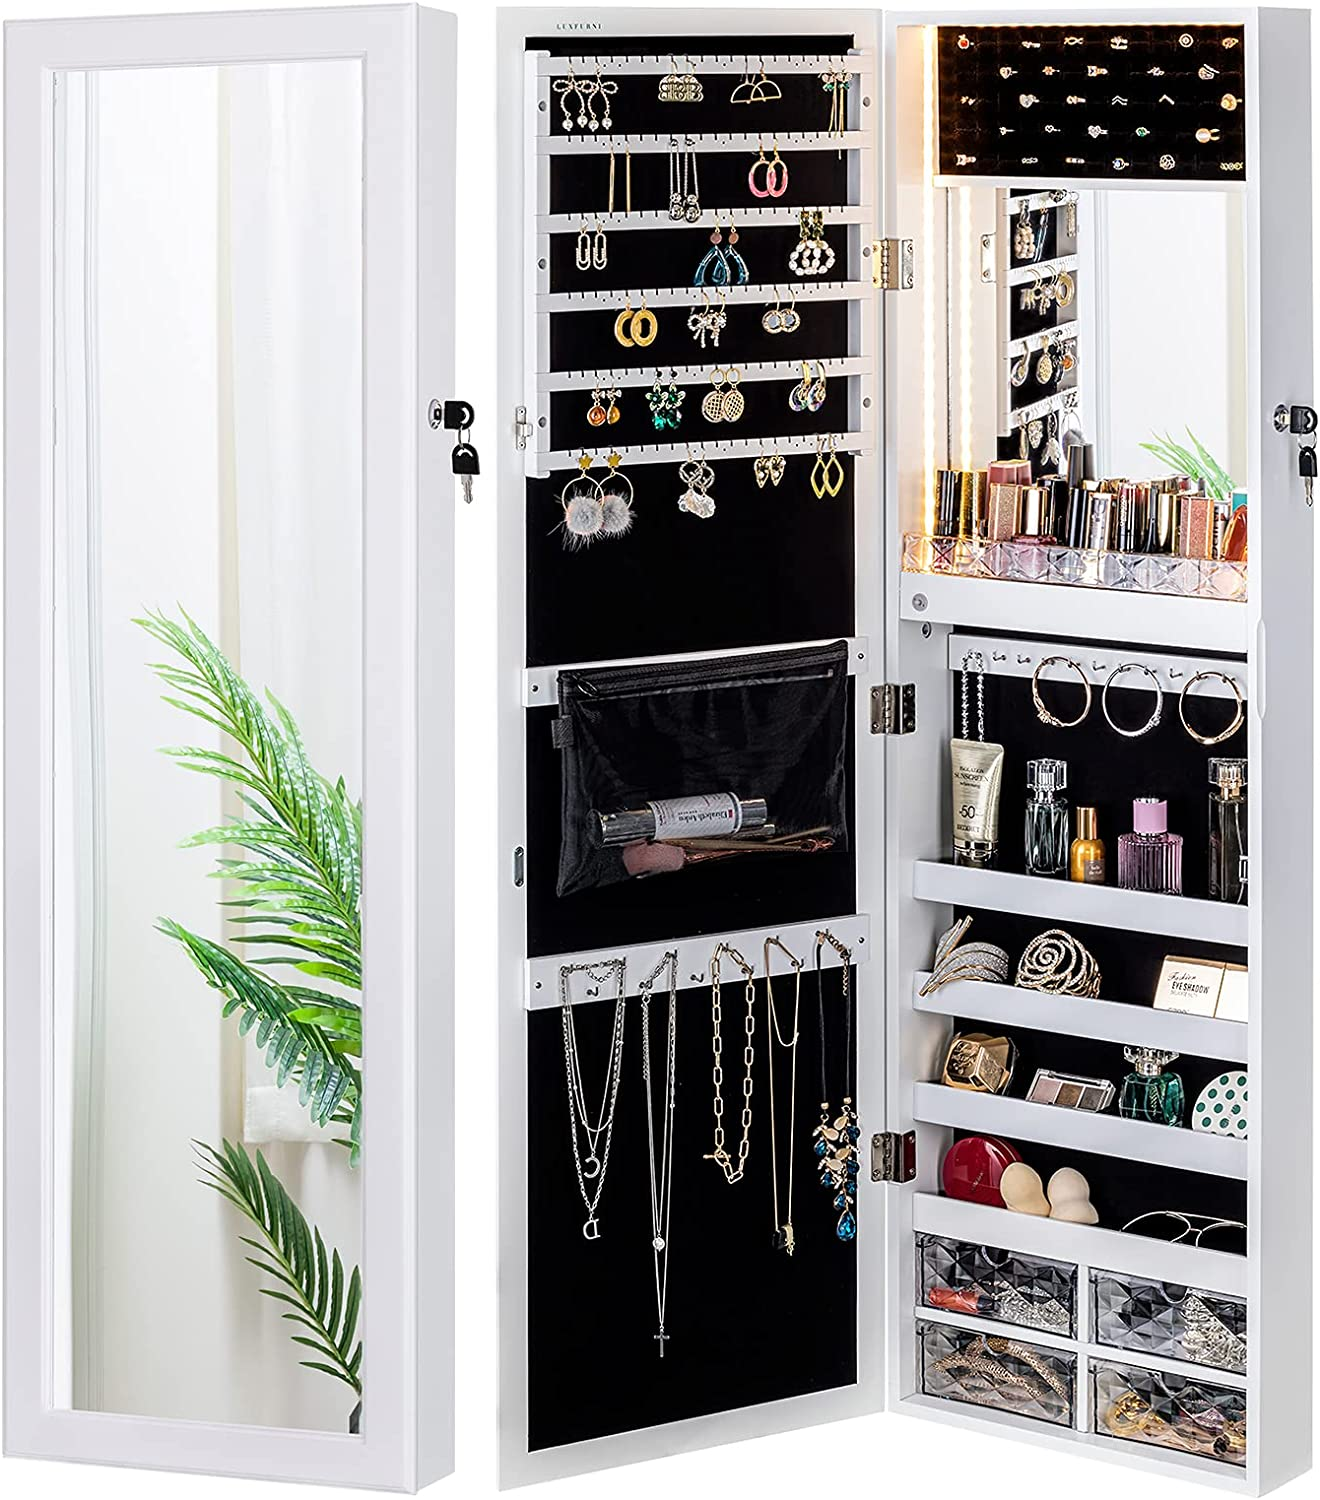 LUXFURNI Mirror Jewelry Cabinet 79 LED Lights Wall-Mount/ Door-Hanging Armoire, Lockable Storage Organizer w/ Drawers (White) : Clothing, Shoes & Jewelry